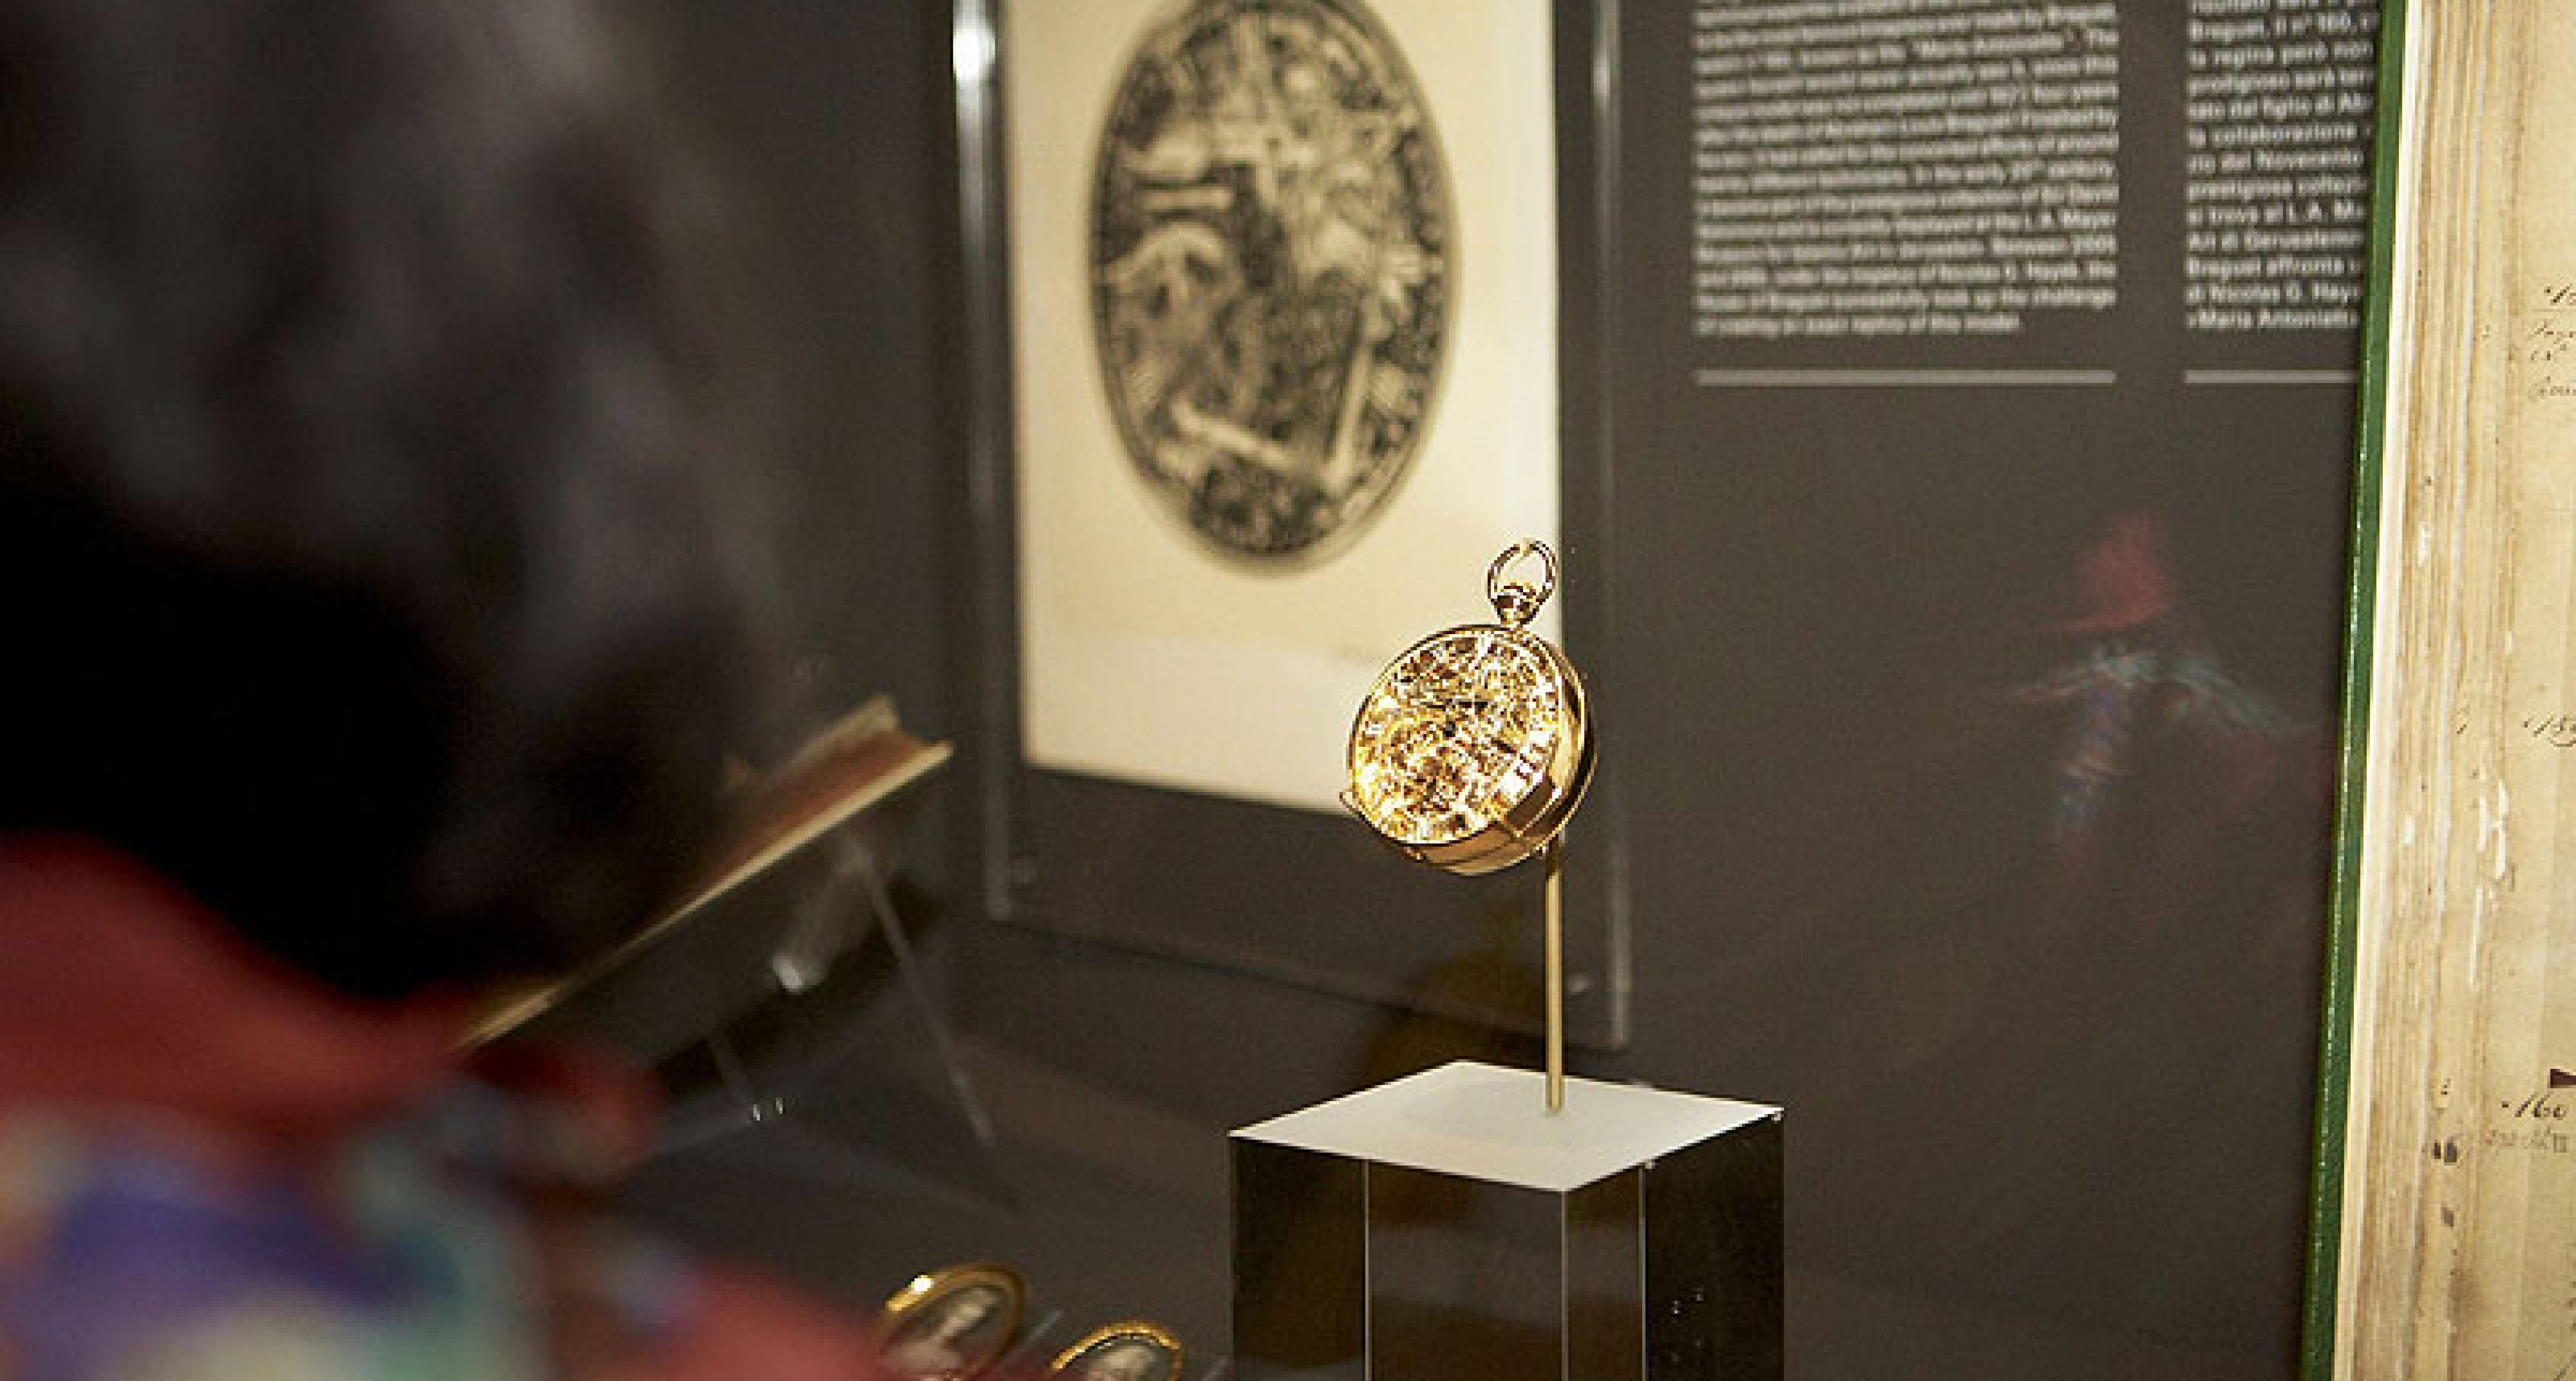 Abraham-Louis Breguet: 'How watchmaking conquered the world' exhibition